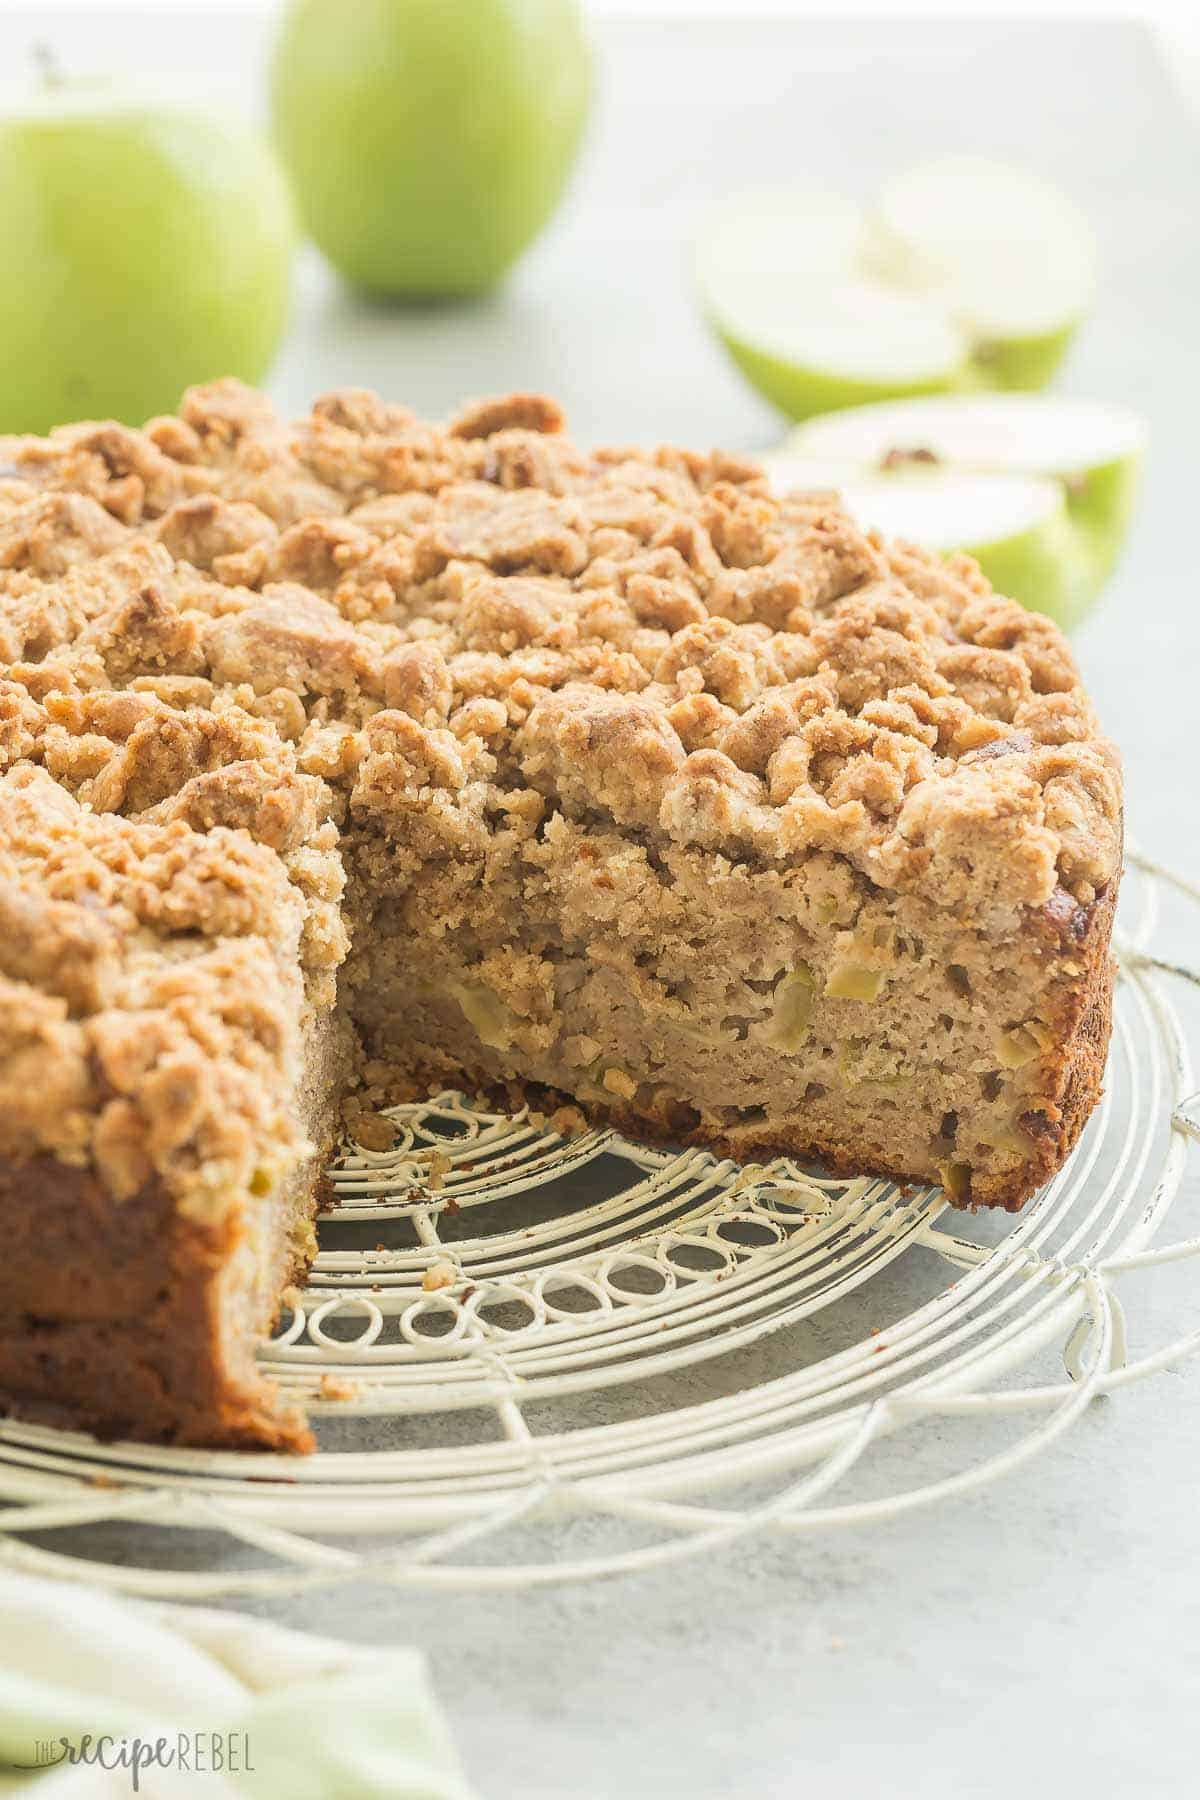 Best Make Ahead Coffee Cake